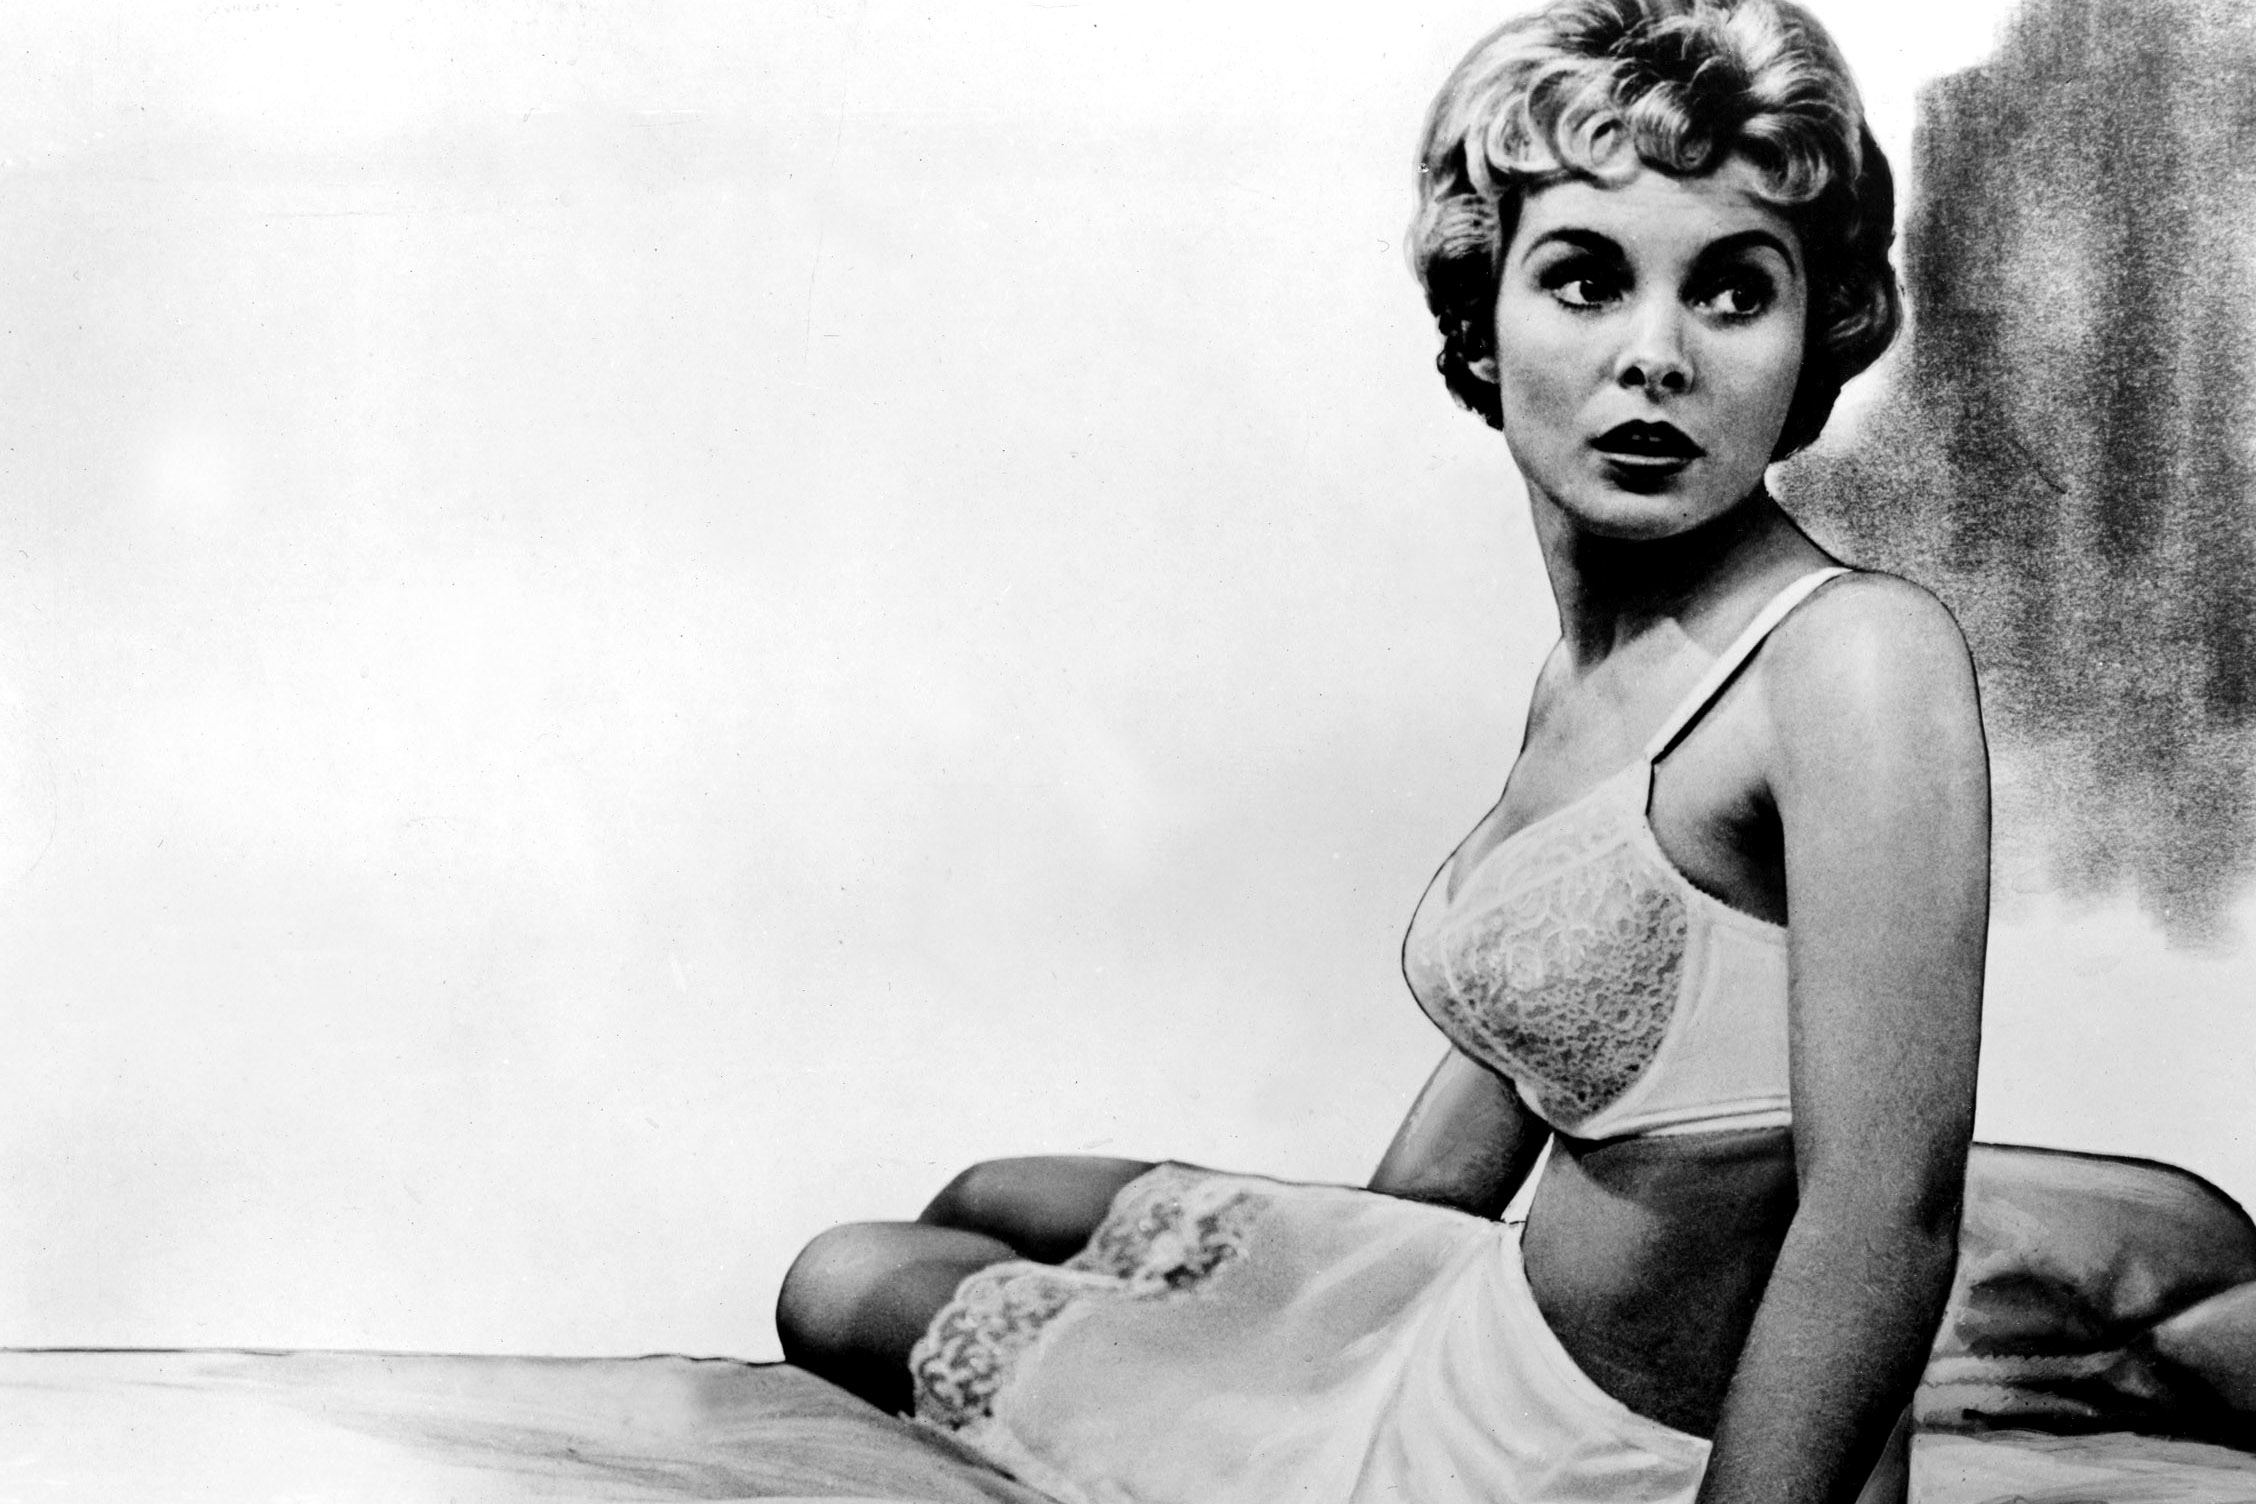 PSYCHO, Janet Leigh, 1960.